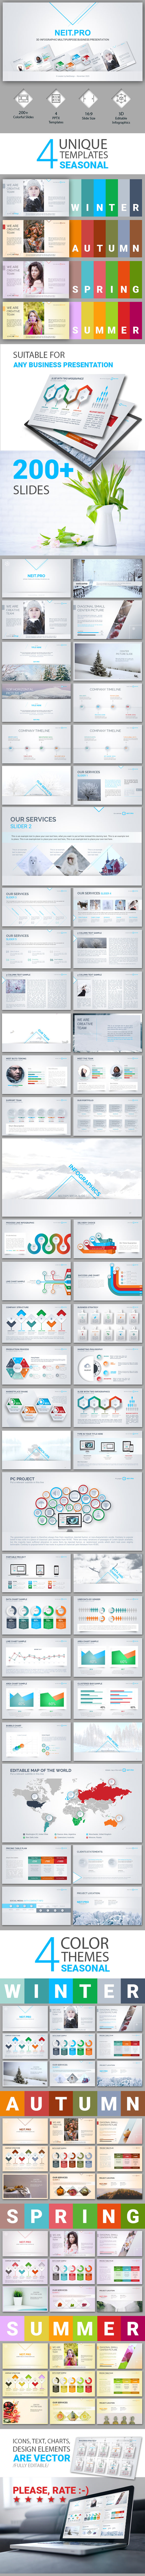 Neit.Pro 3D Infographic Multipurpose Business Presentation Template